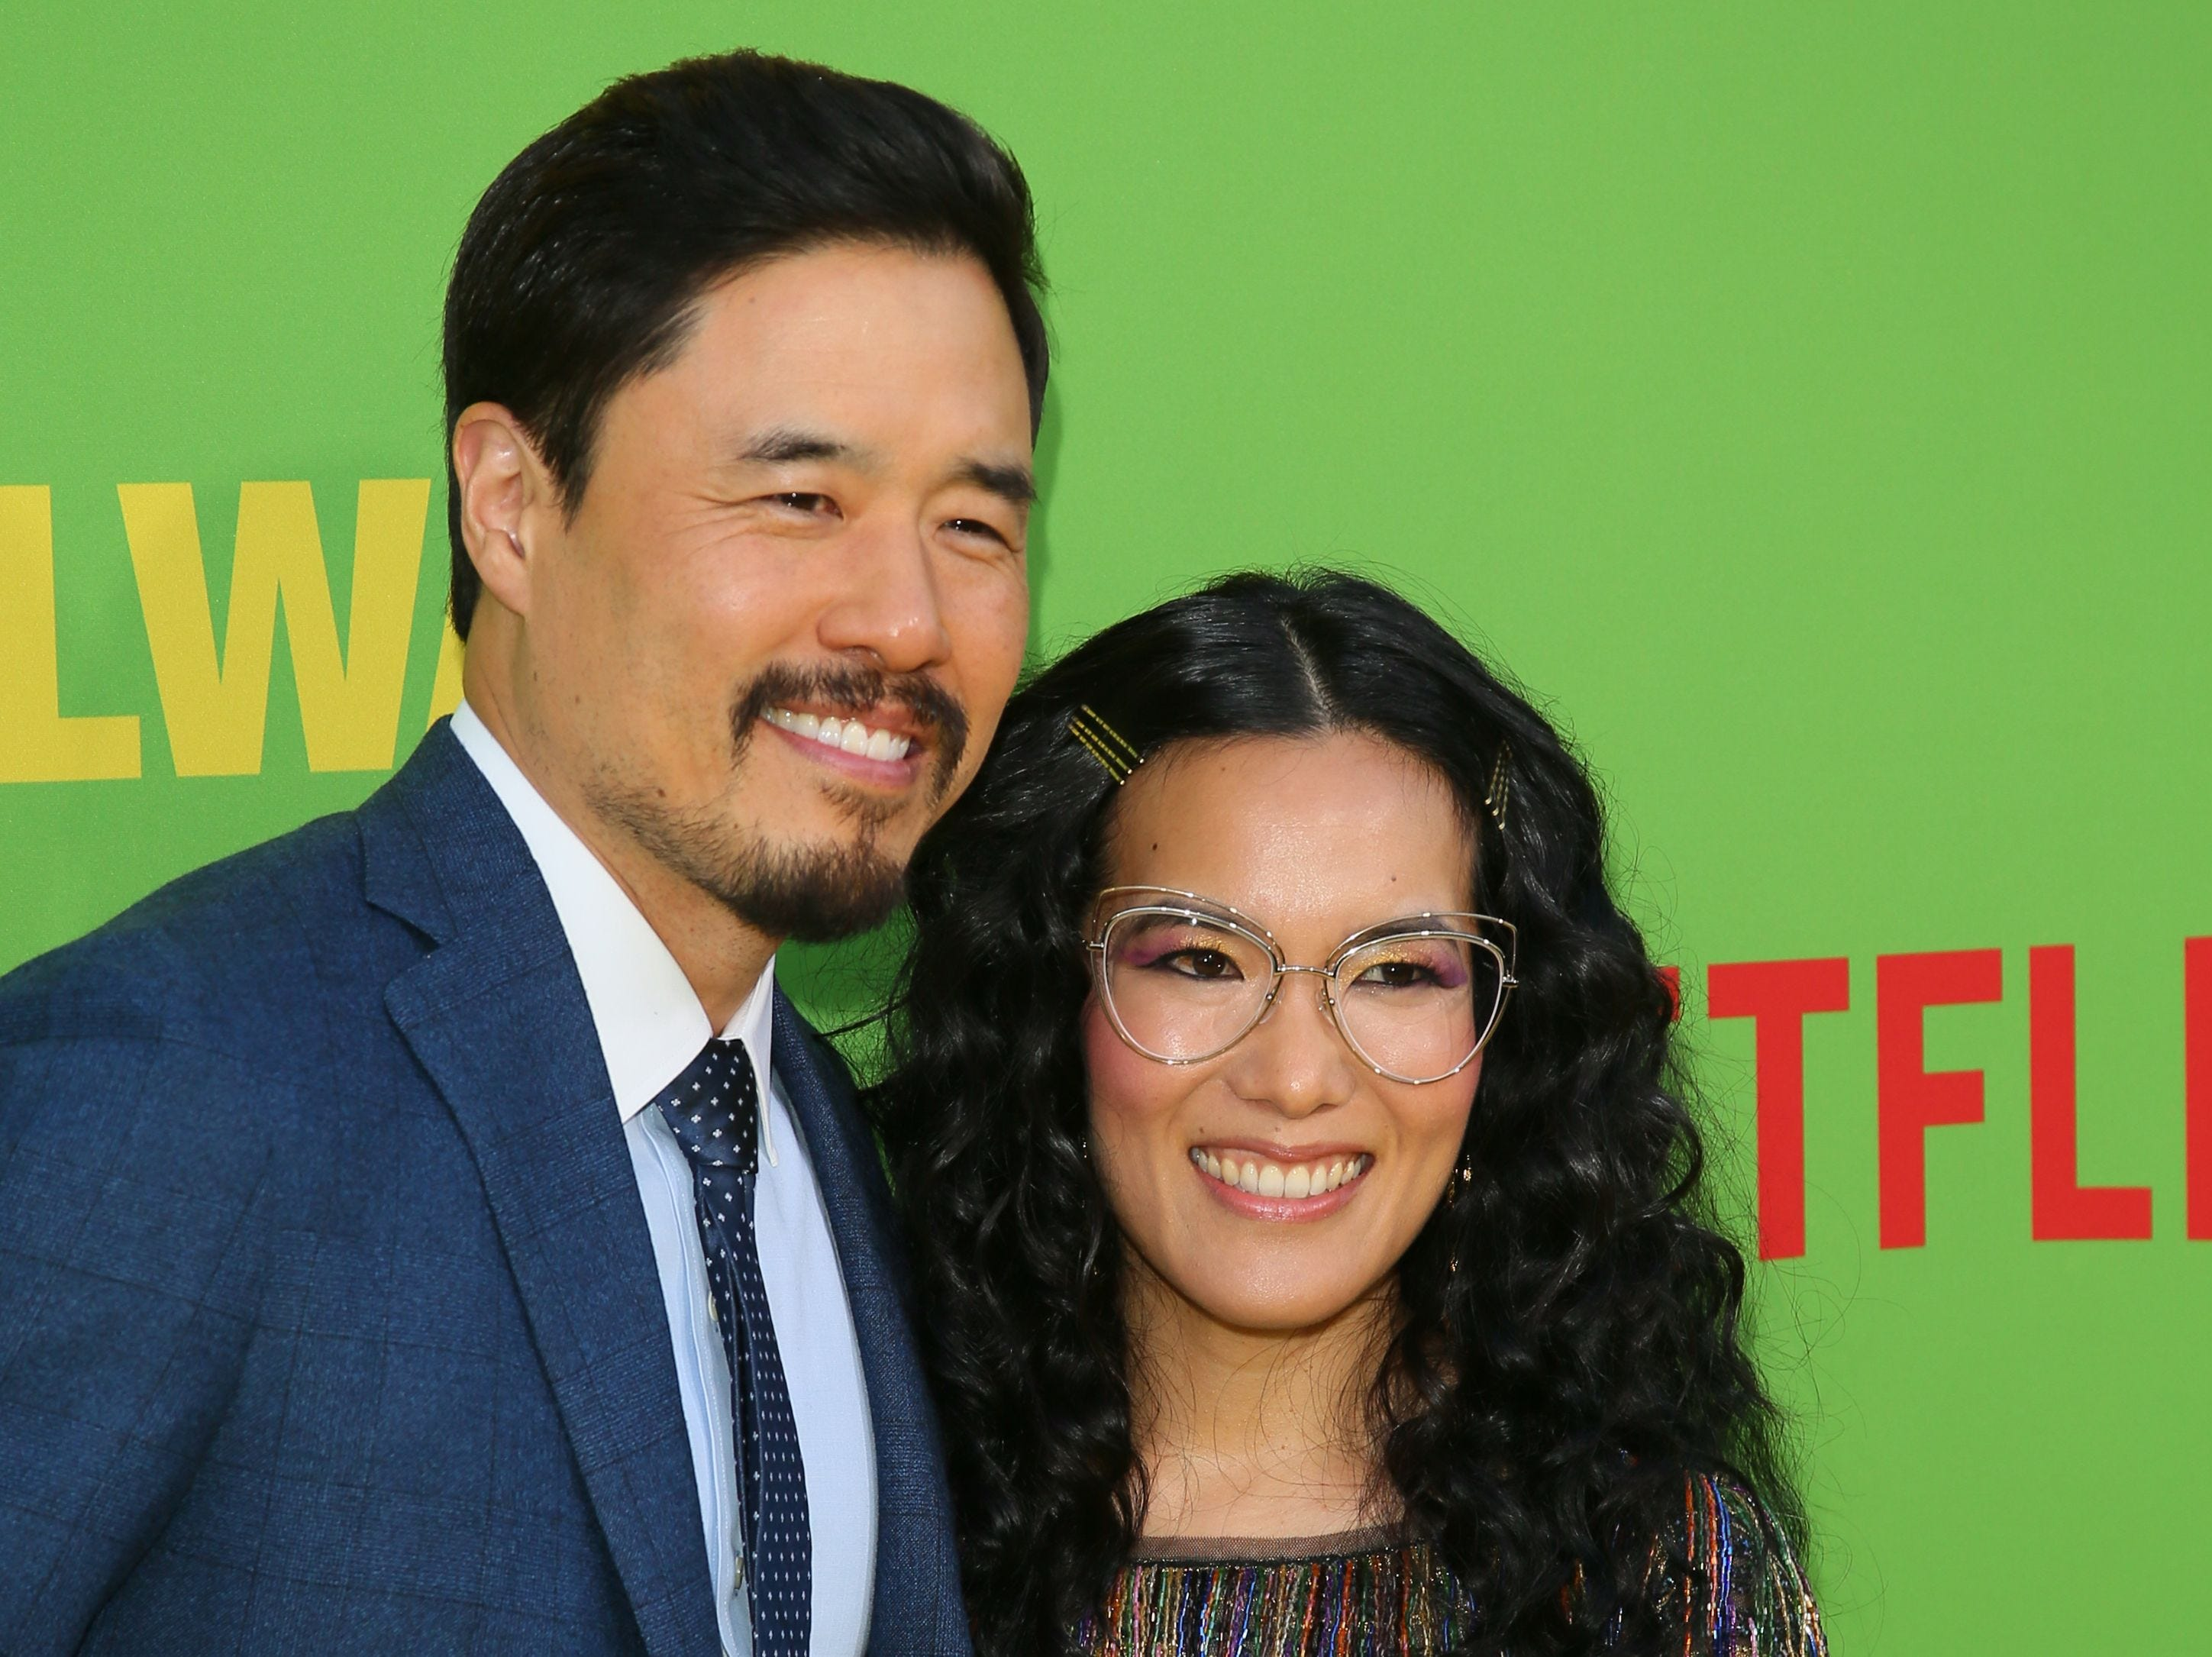 """Actress Ali Wong and actor Randall Park arrive for the Netflix world premiere of """"Always Be My Maybe"""" at the Regency Village theatre on May 22, 2019 in Westwood, Calif."""